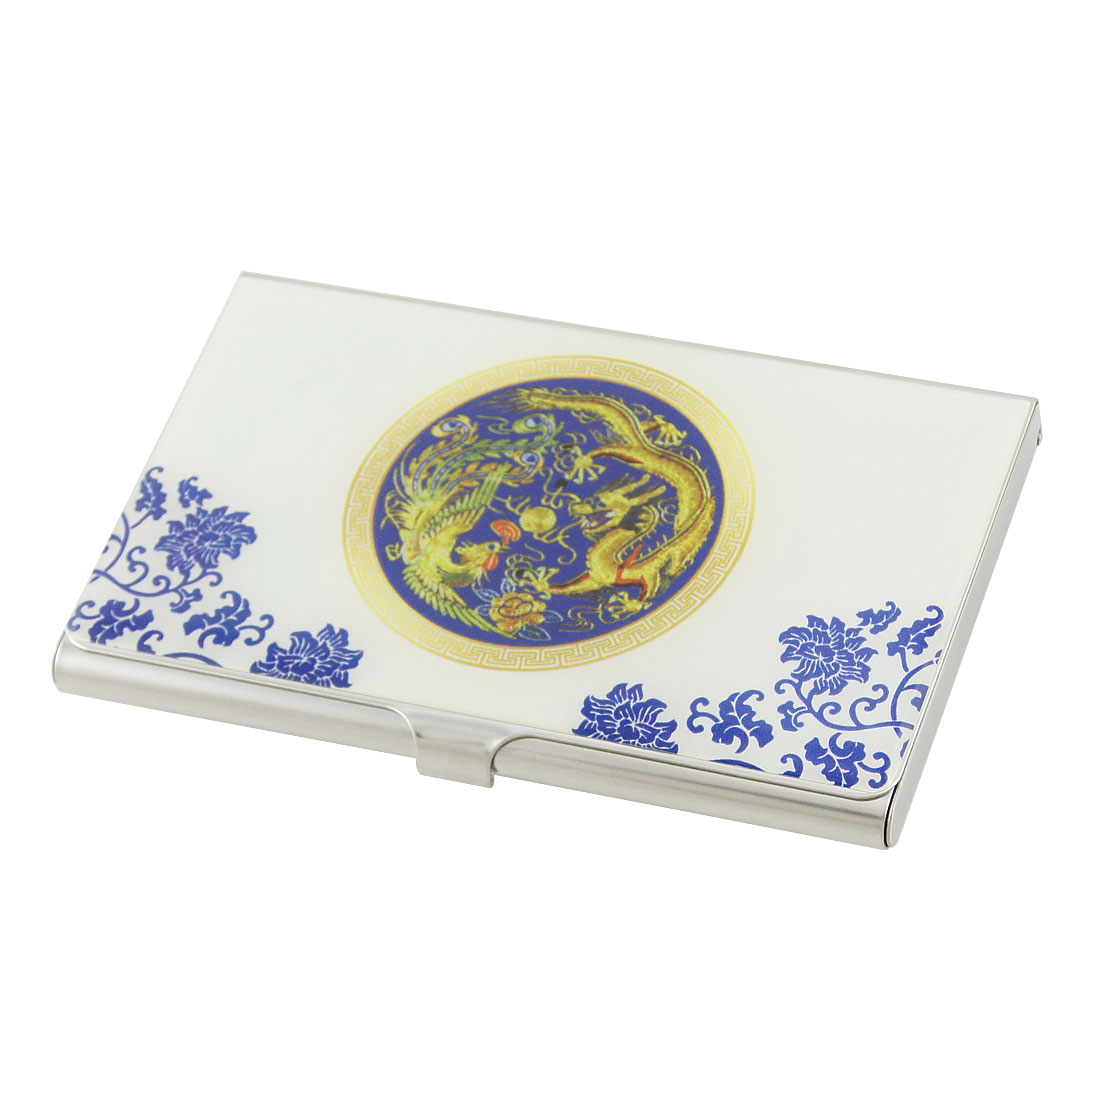 Plate Centering Blue Floral Pattern Stainless Steel Credit Name Card Holder Box